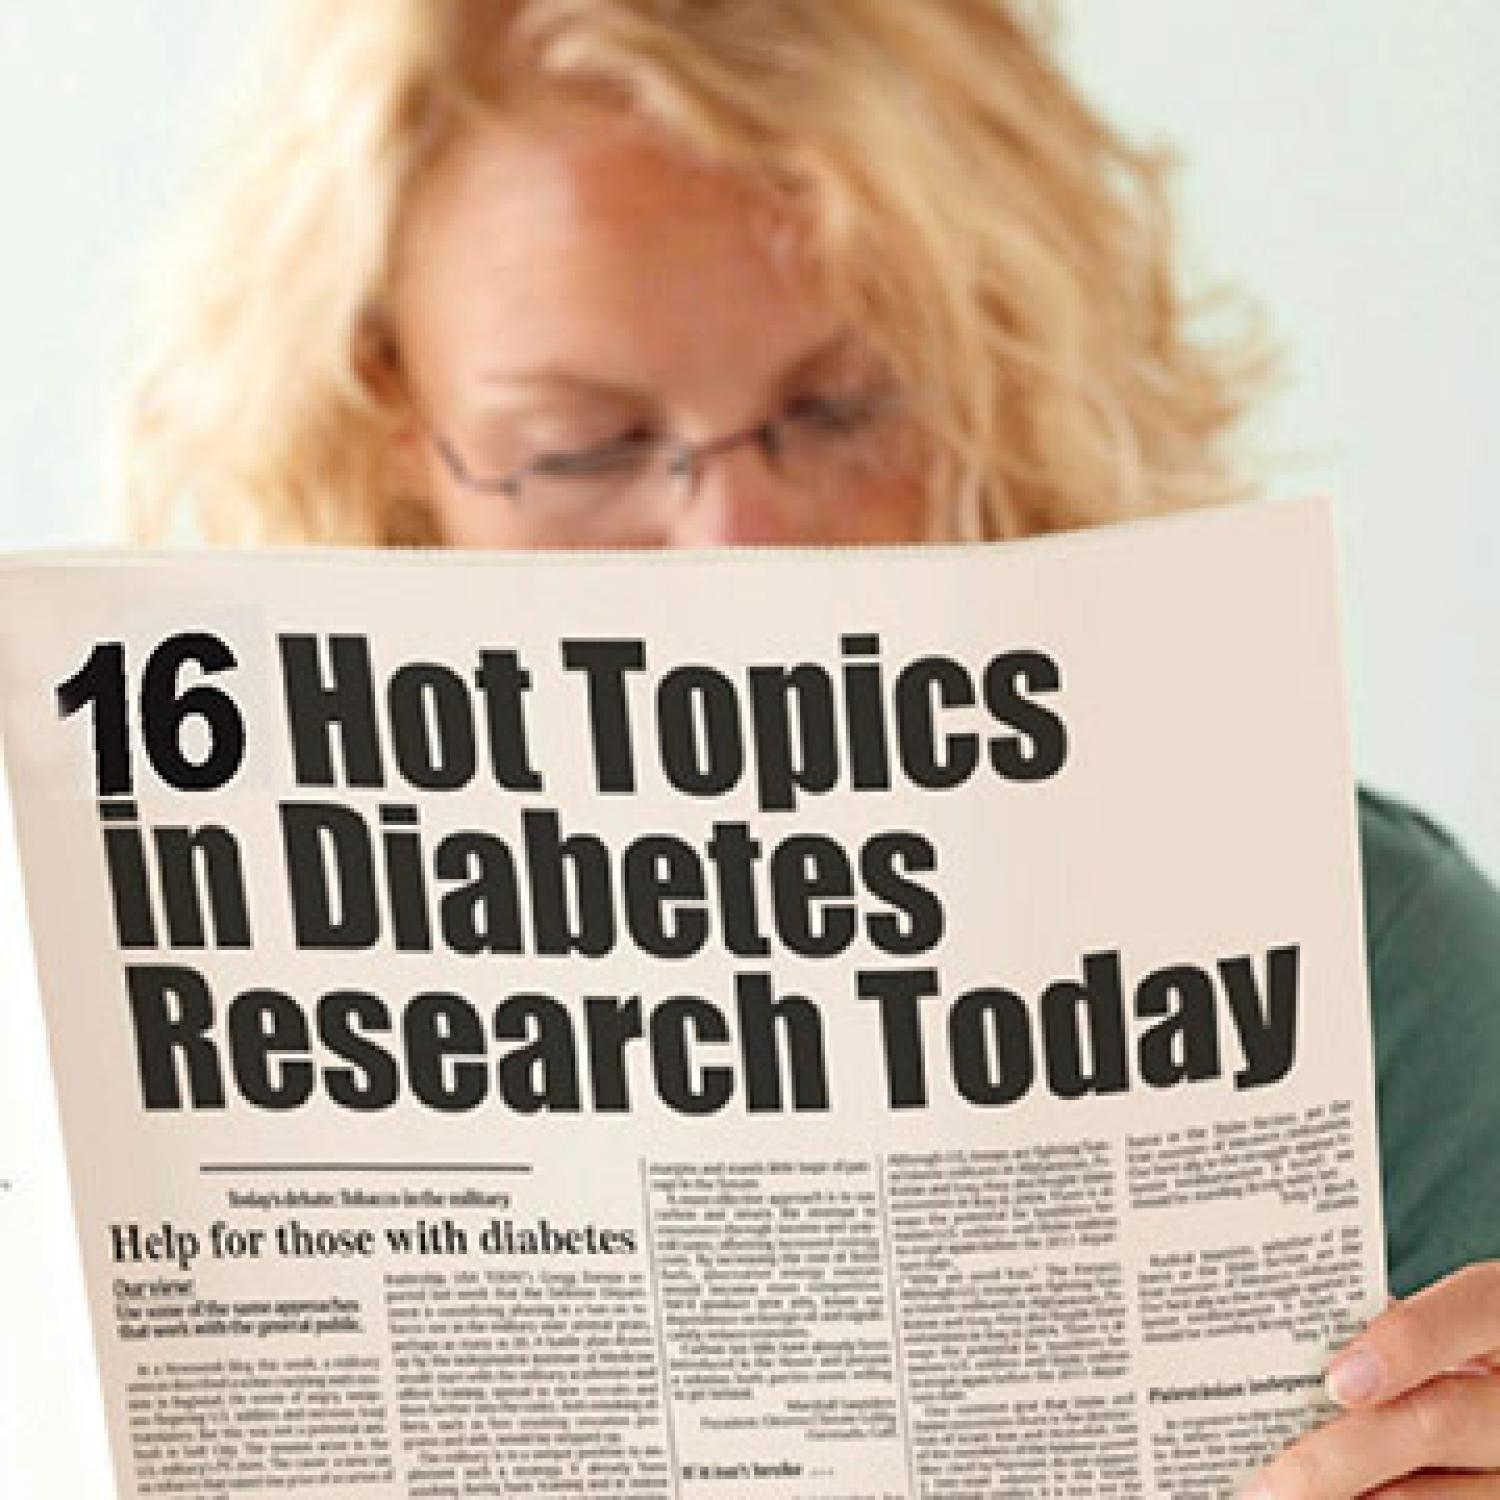 16 Hot Topics In Diabetes Research Today